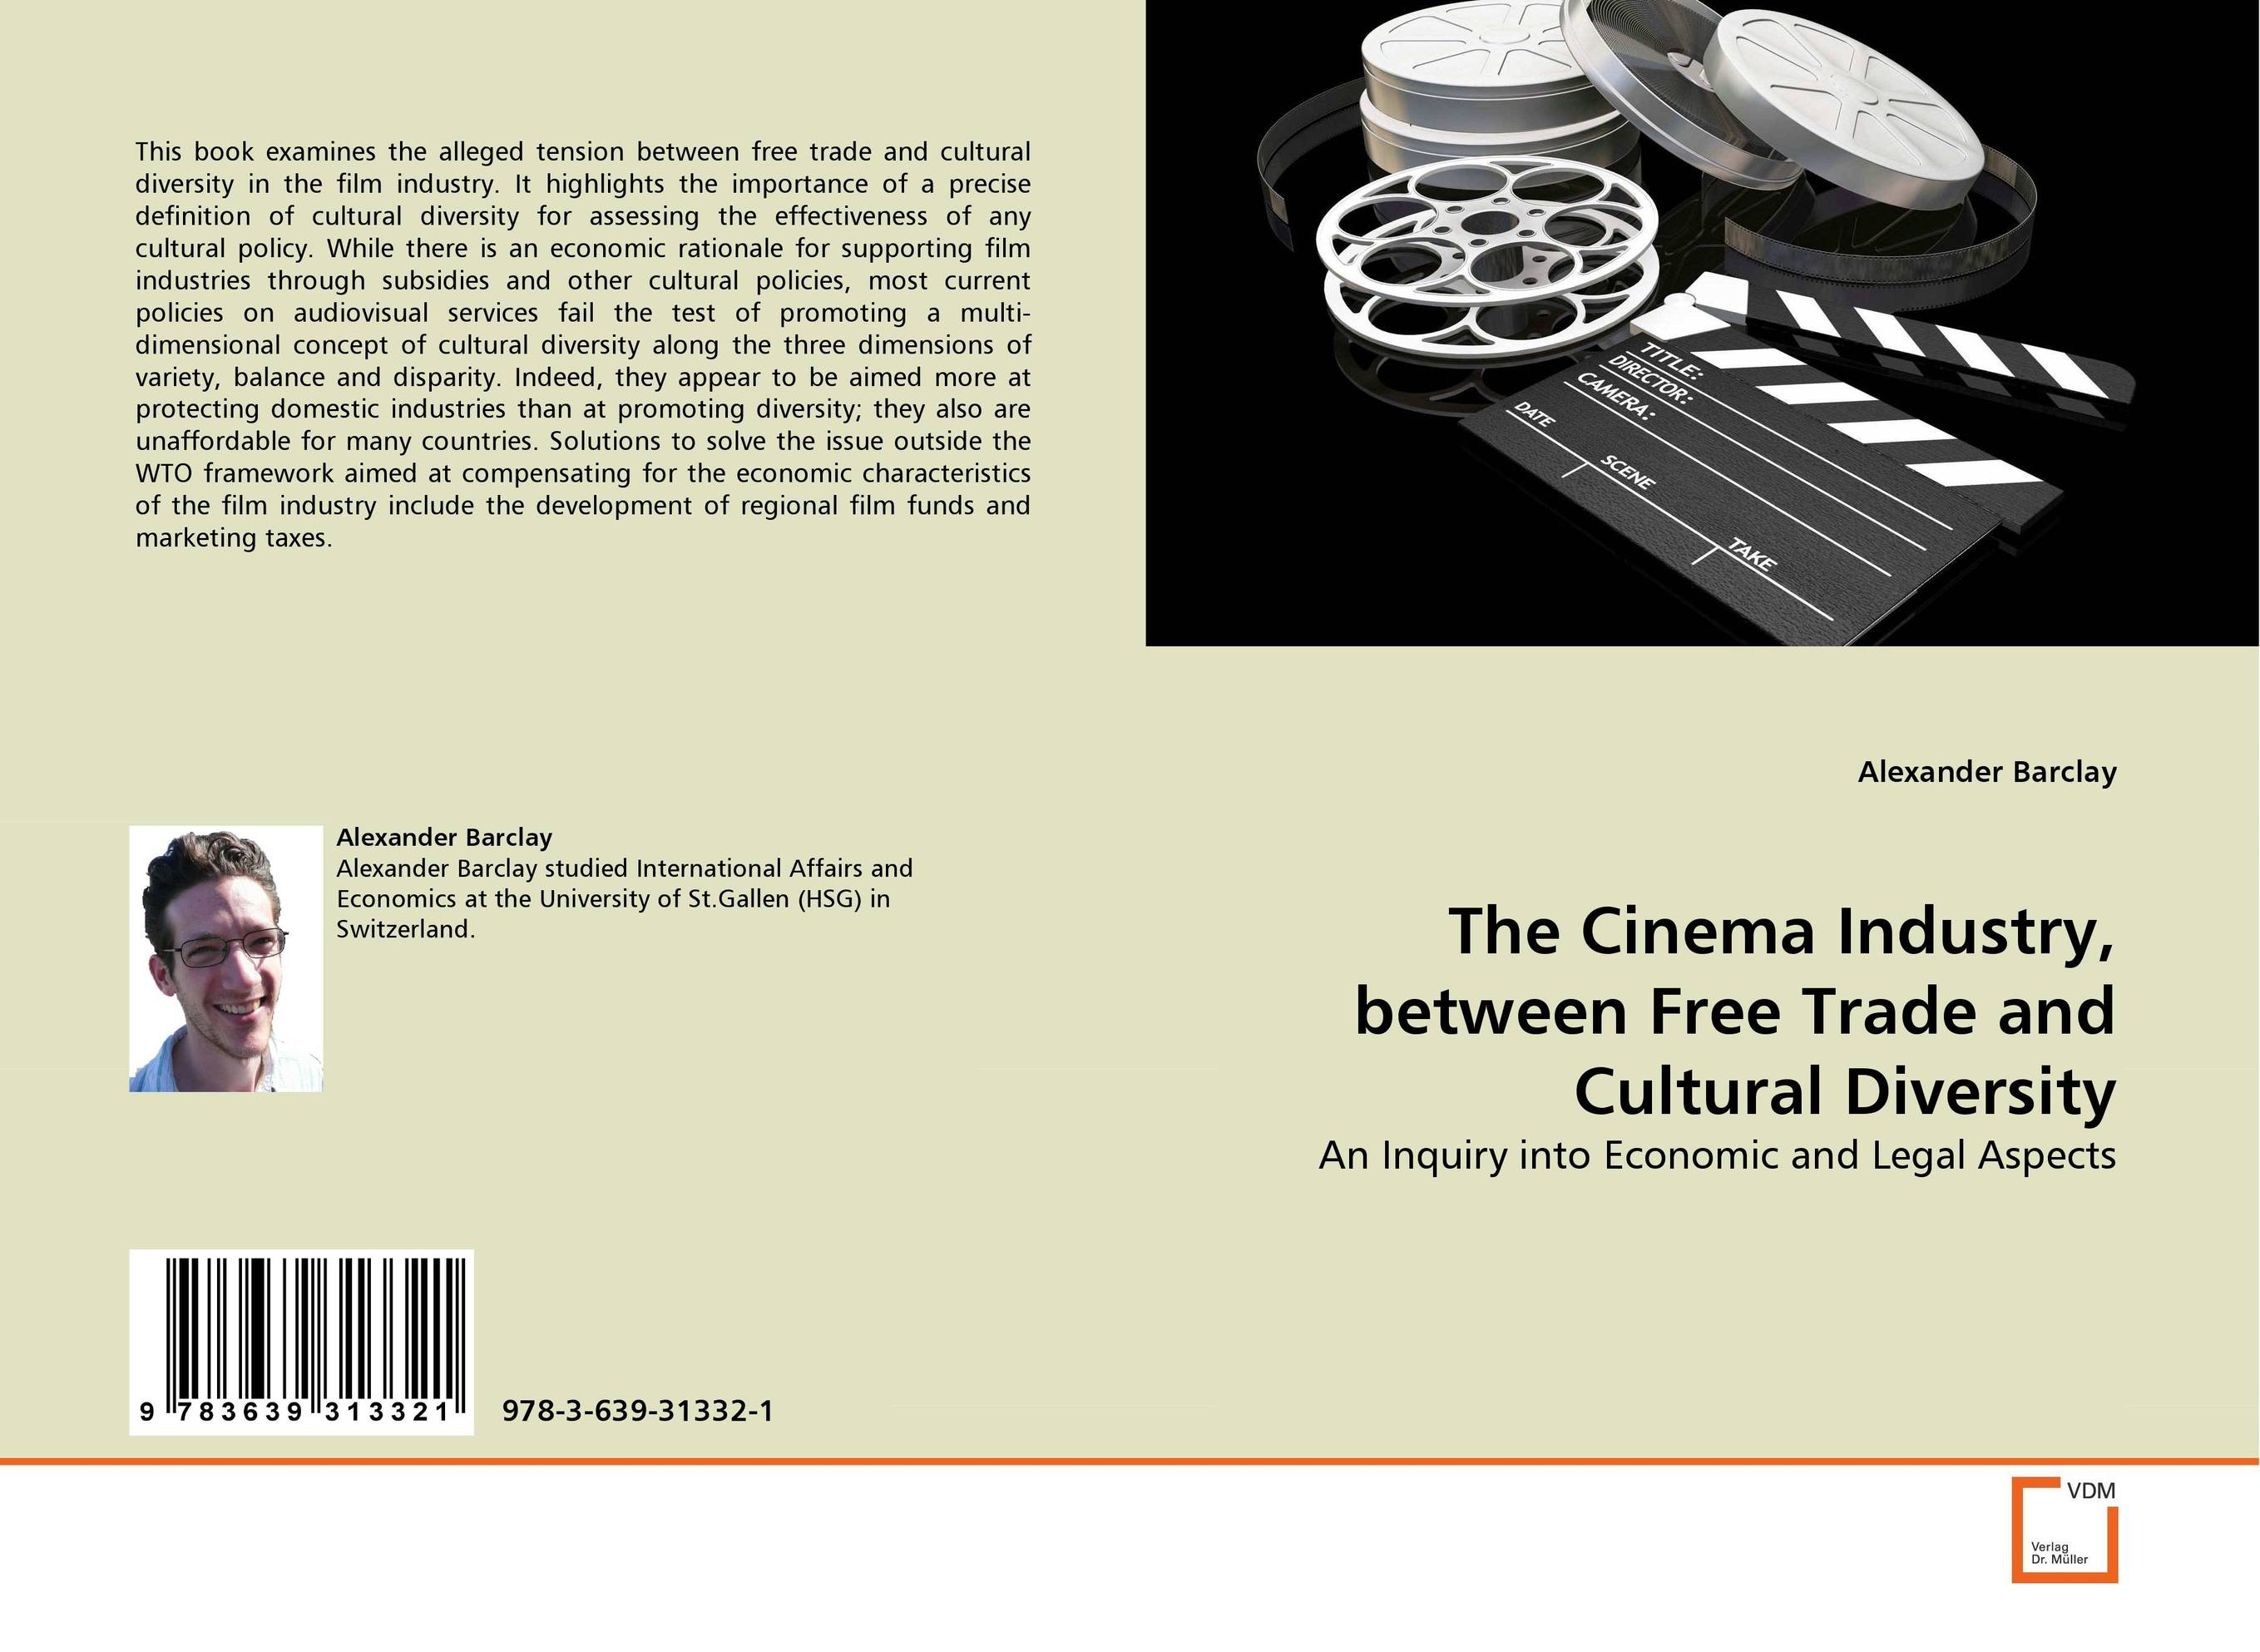 The Cinema Industry, between Free Trade and Cultural Diversity orality online and the promotion of cultural diversity